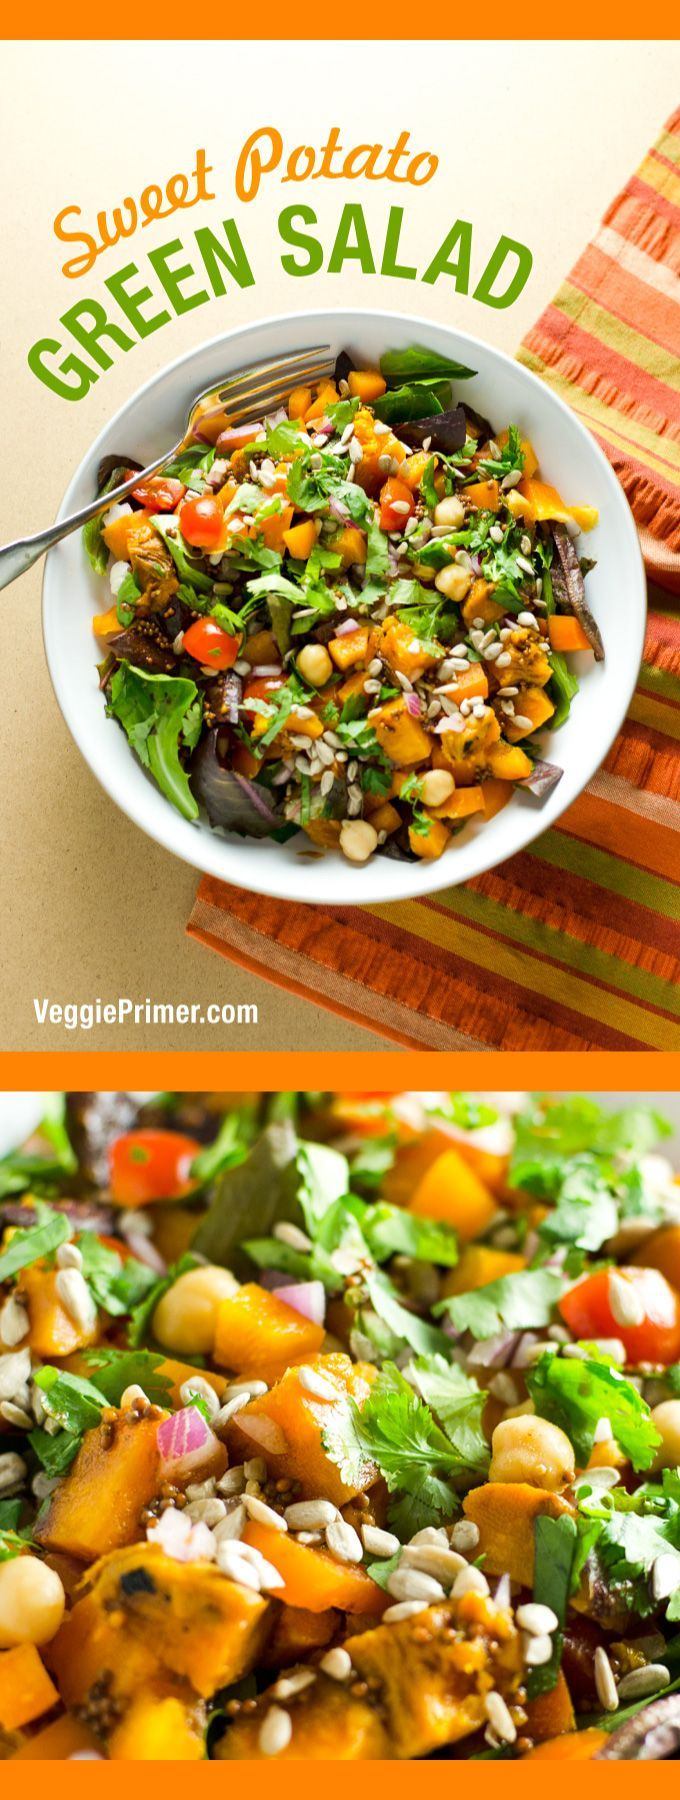 Sweet Potato Green Salad - makes a delicious vegan and gluten free main meal or side dish | VeggiePrimer.com